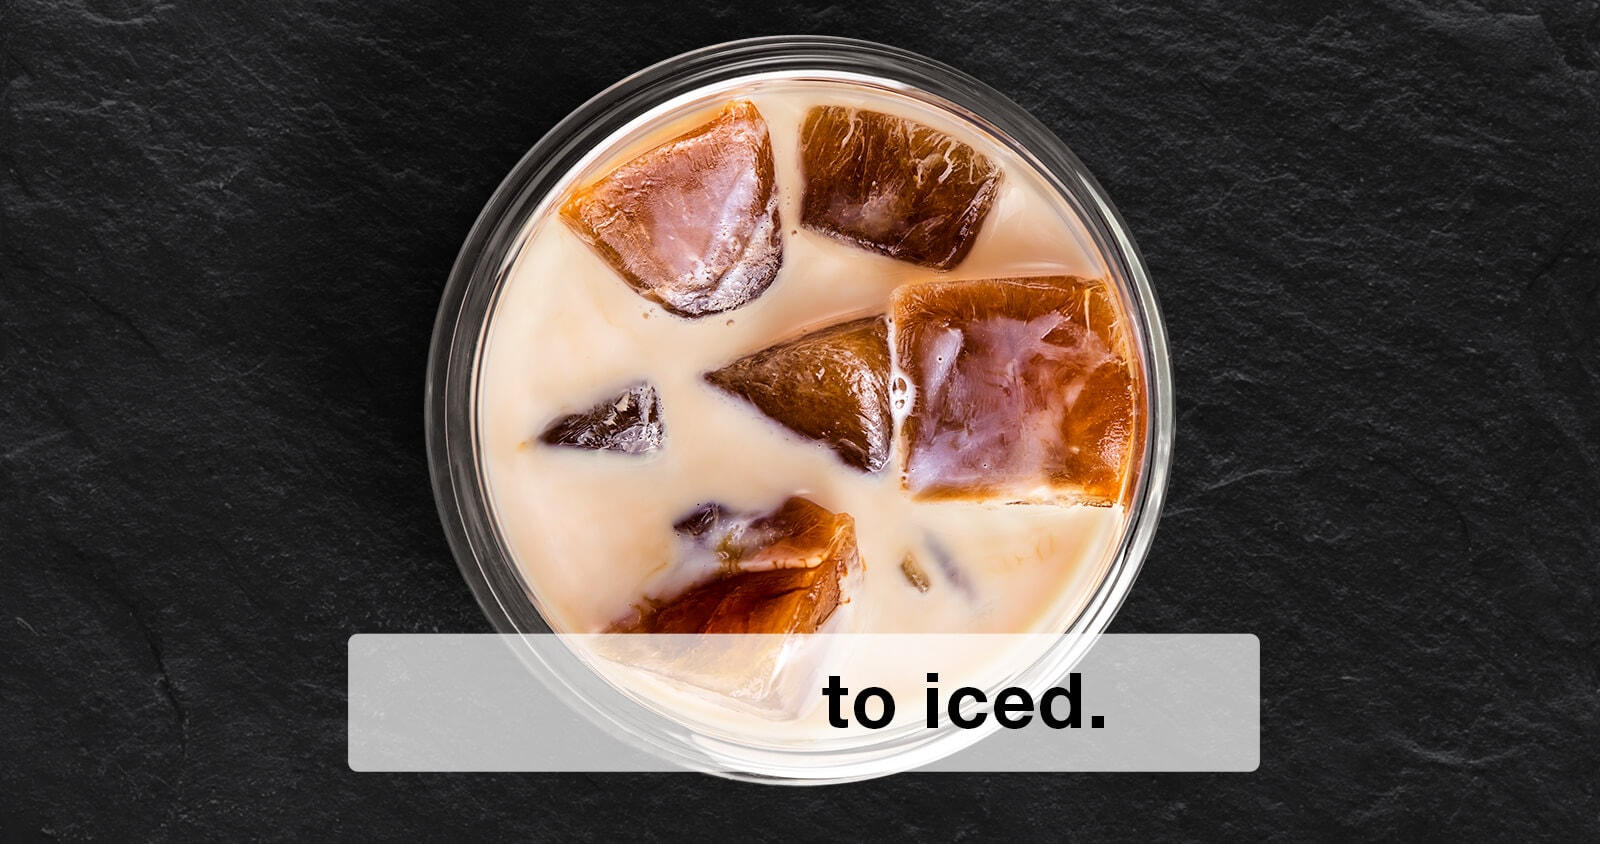 Iced Coffee made by Braun MultiServe Coffee machine